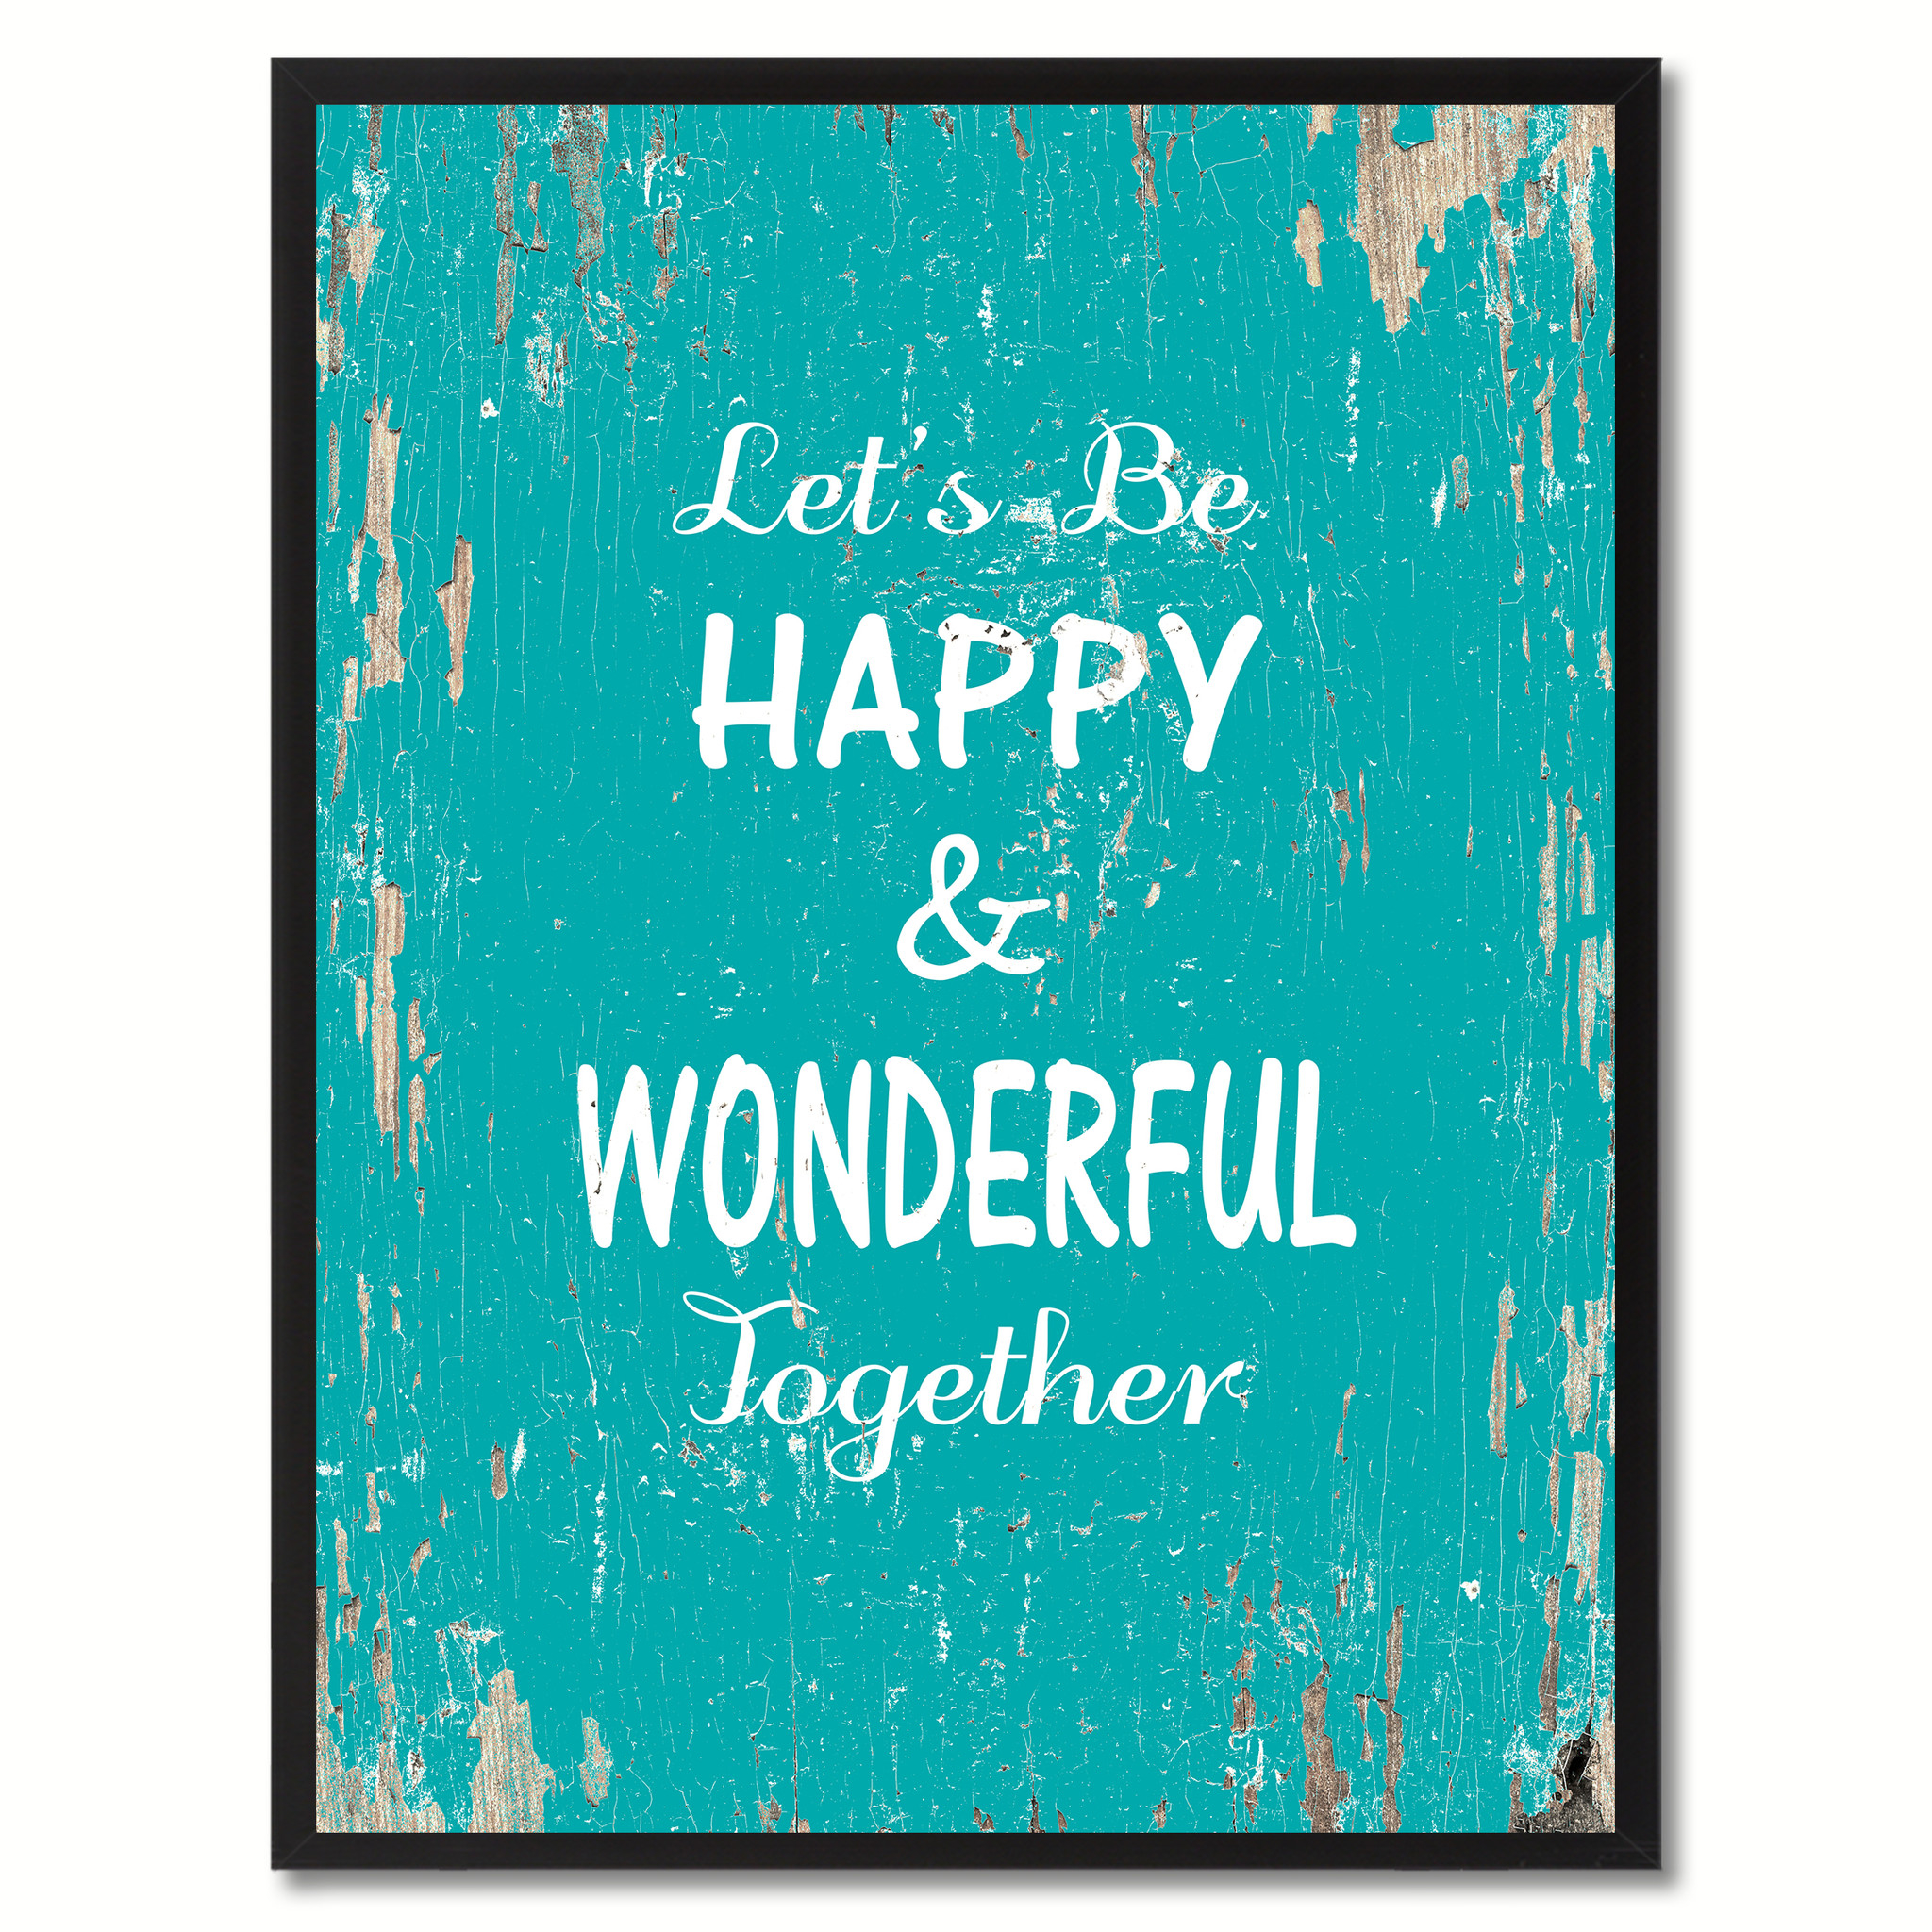 """Let's Be Happy & Wonderful Together Saying Canvas Print, Black Picture Frame Home Decor Wall Art Gifts - 7\""""x9\"""""""